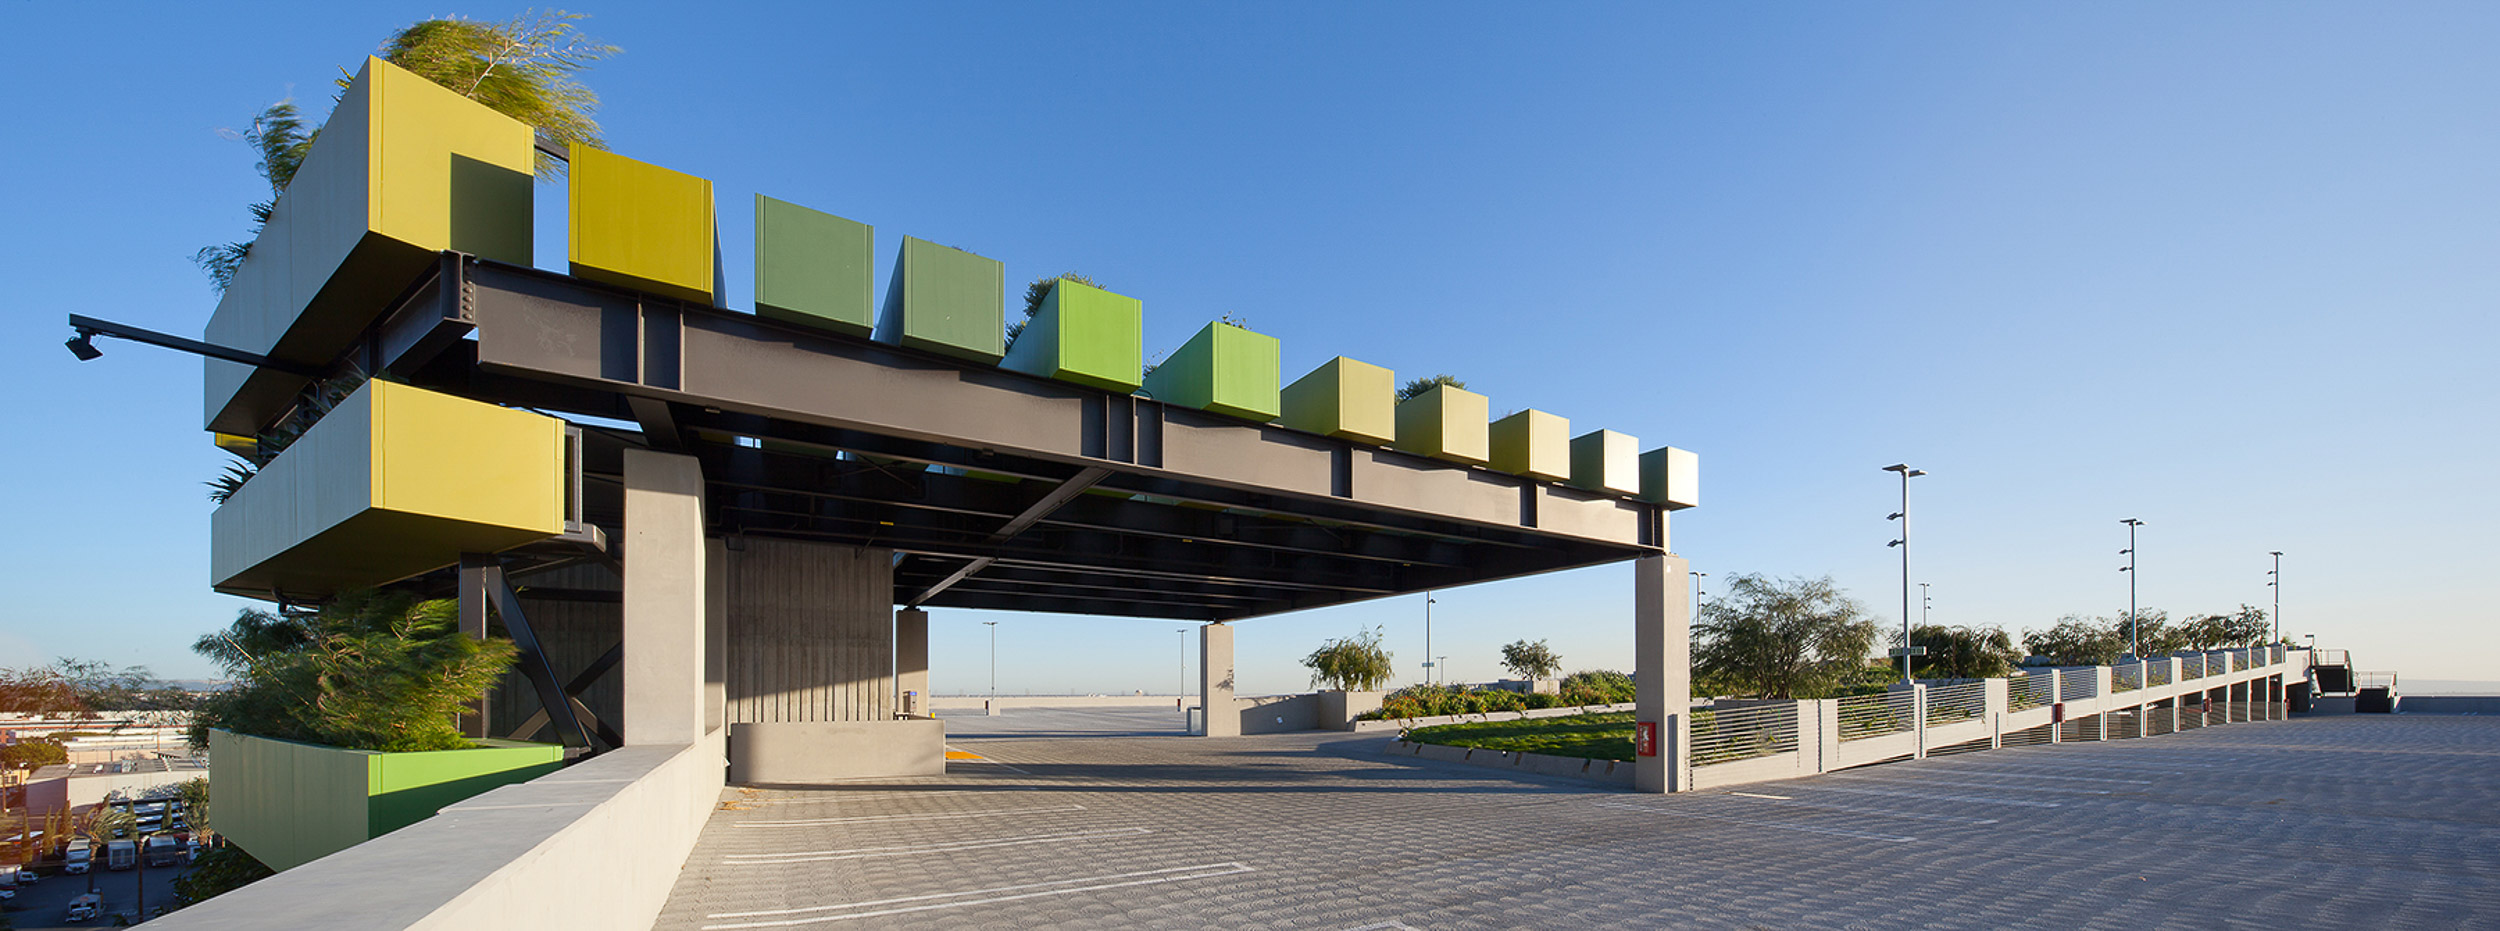 garage roof with green canopy entrance